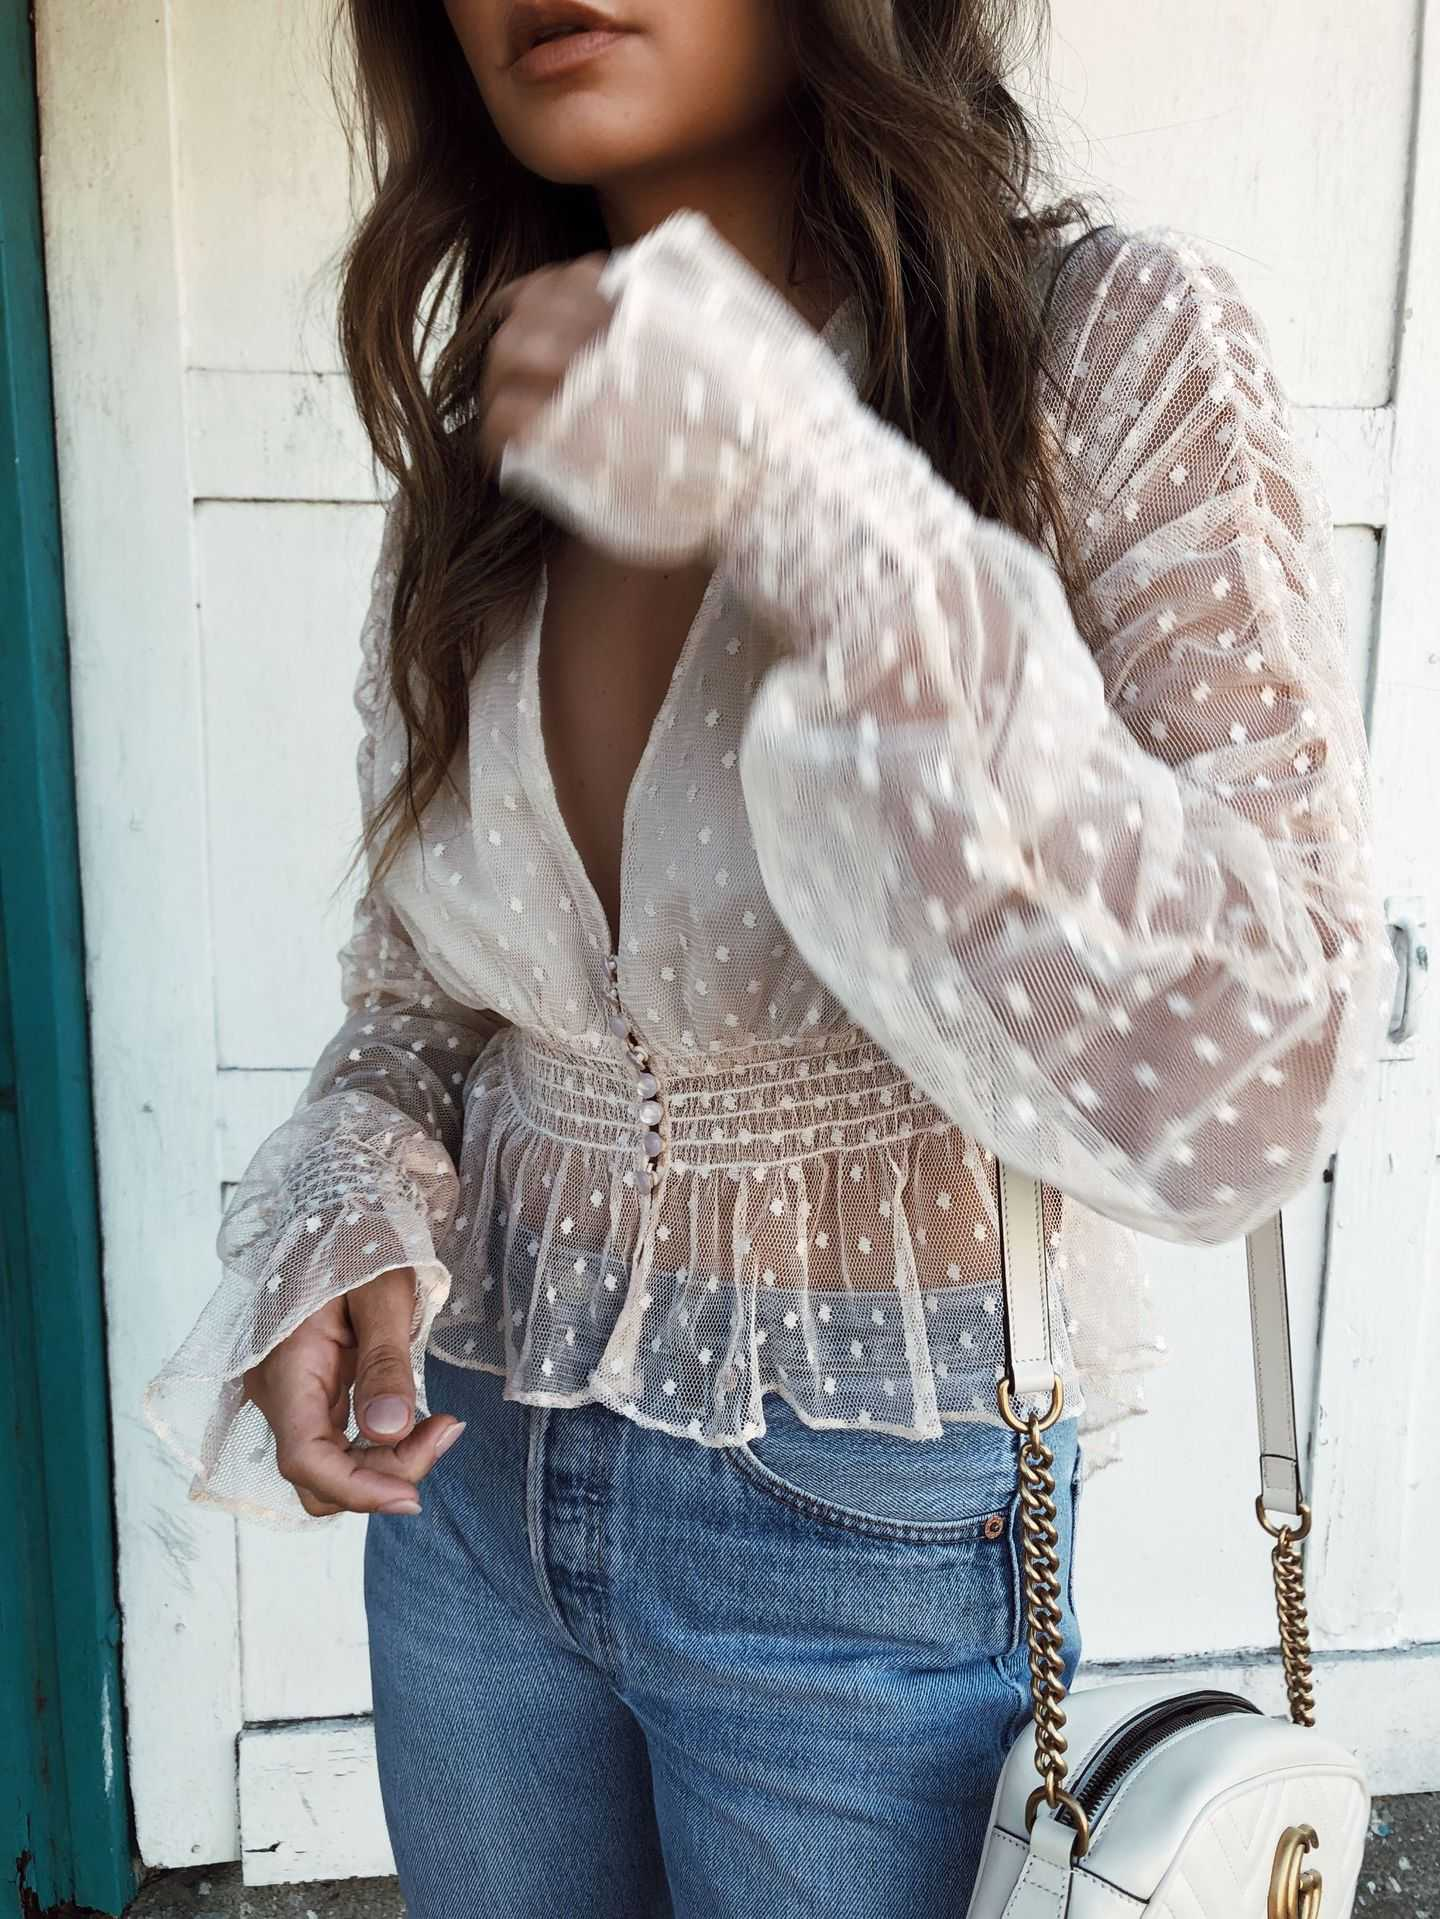 Dotted Tie Front Plunge White Sheer Mesh Lace Peplum Top Blouse